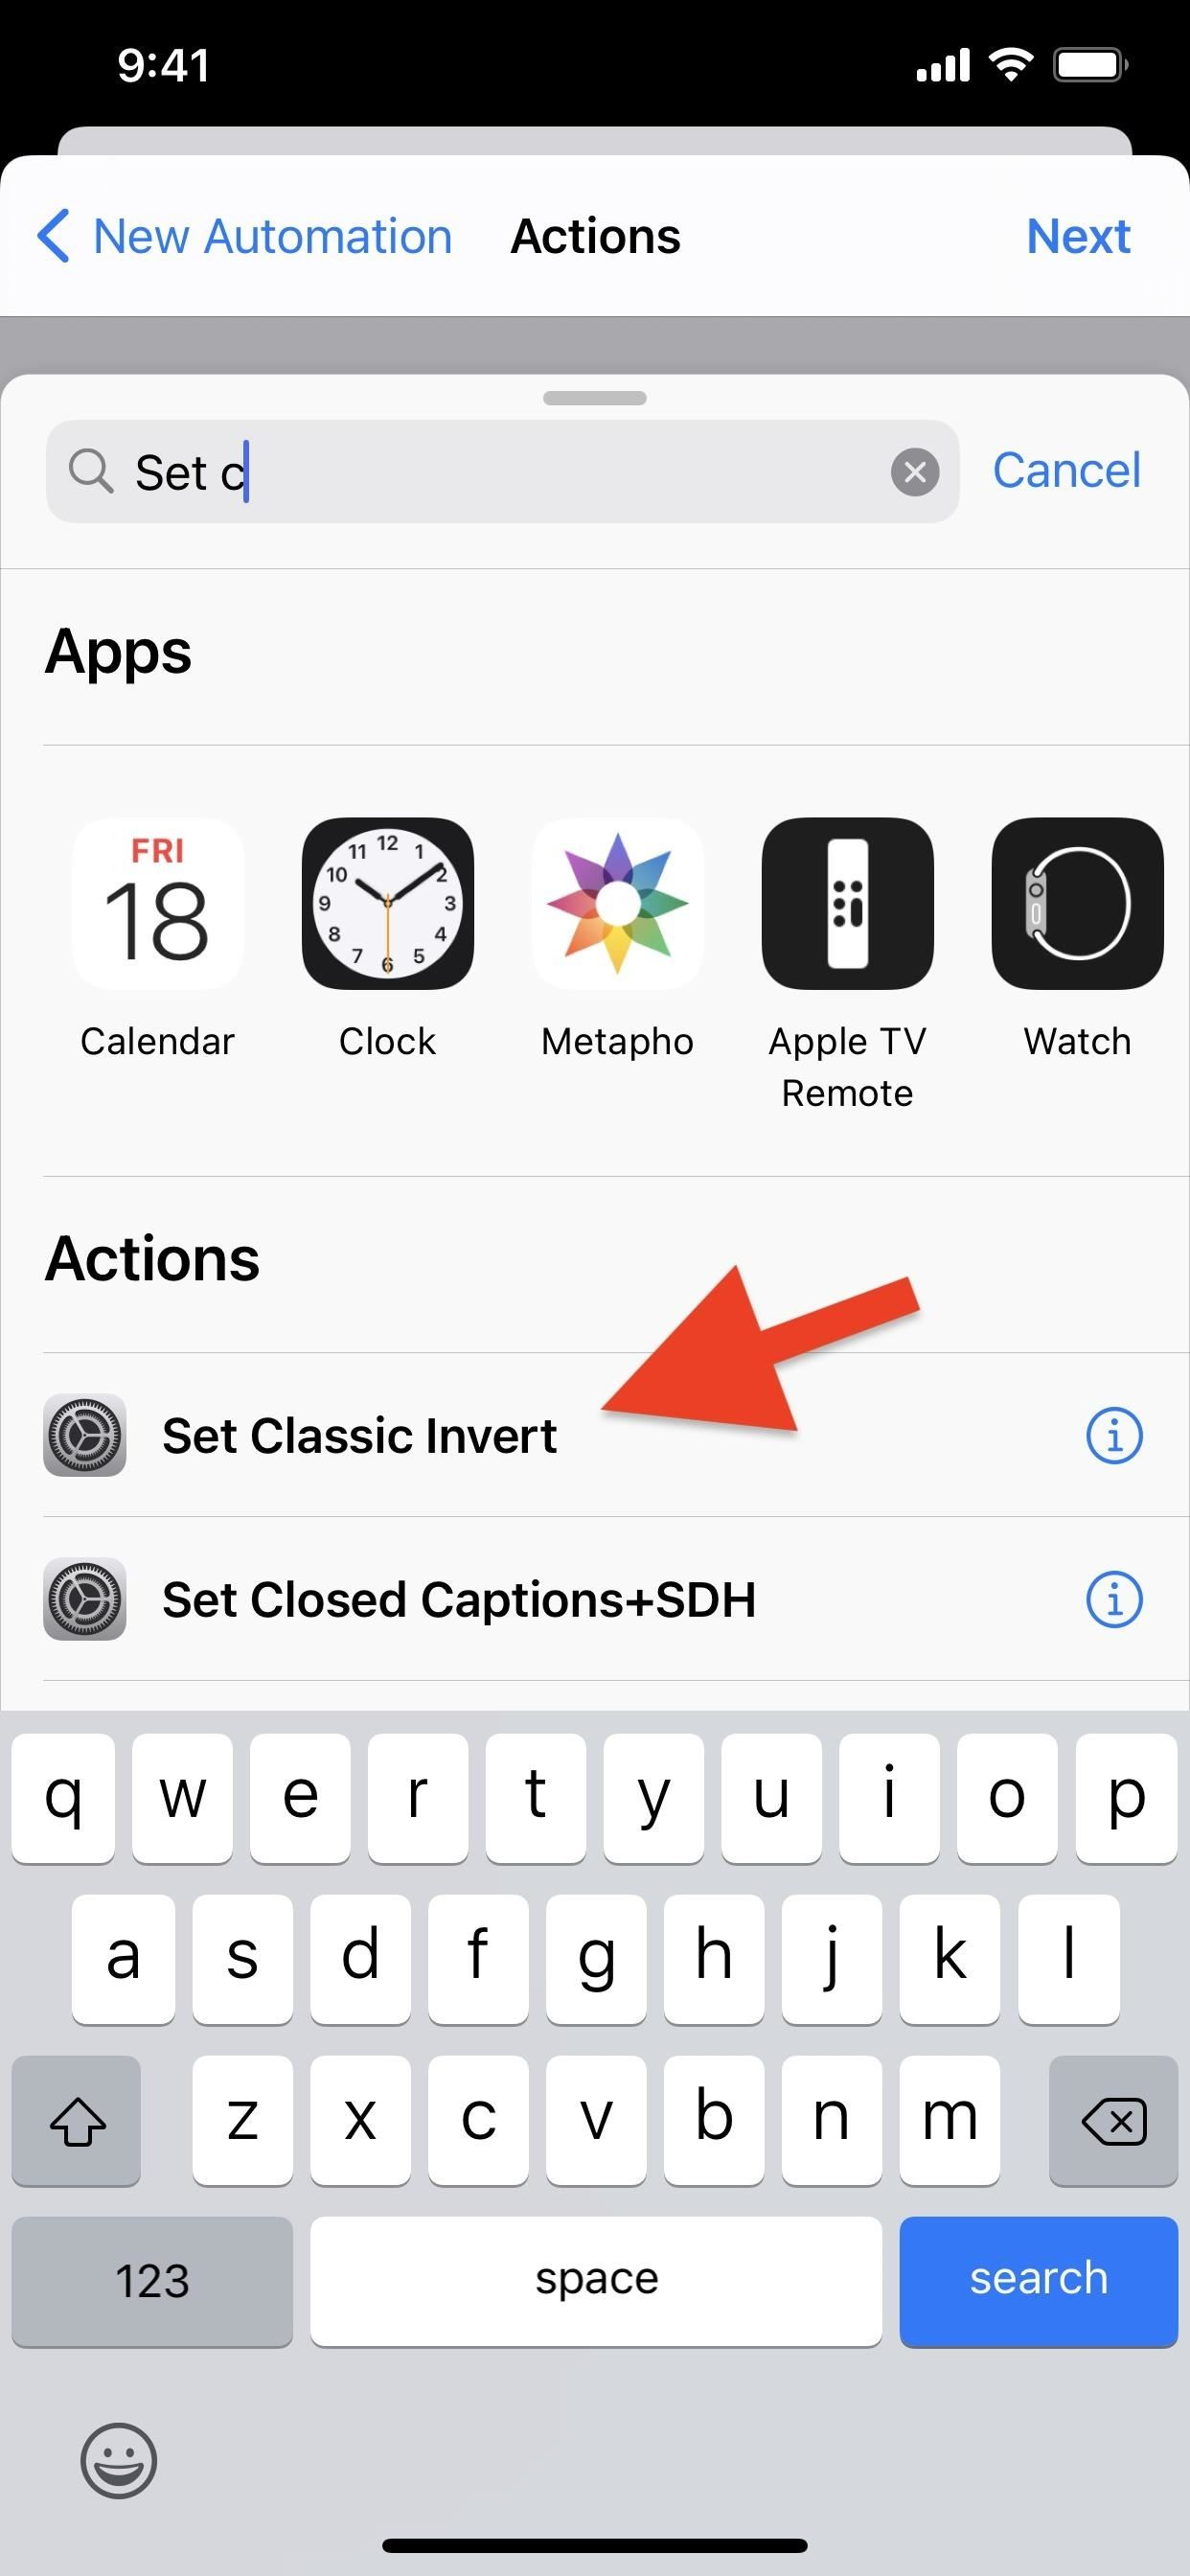 How to Change the Color Theme of Any App Interface on Your iPhone — Without Affecting the Rest of iOS